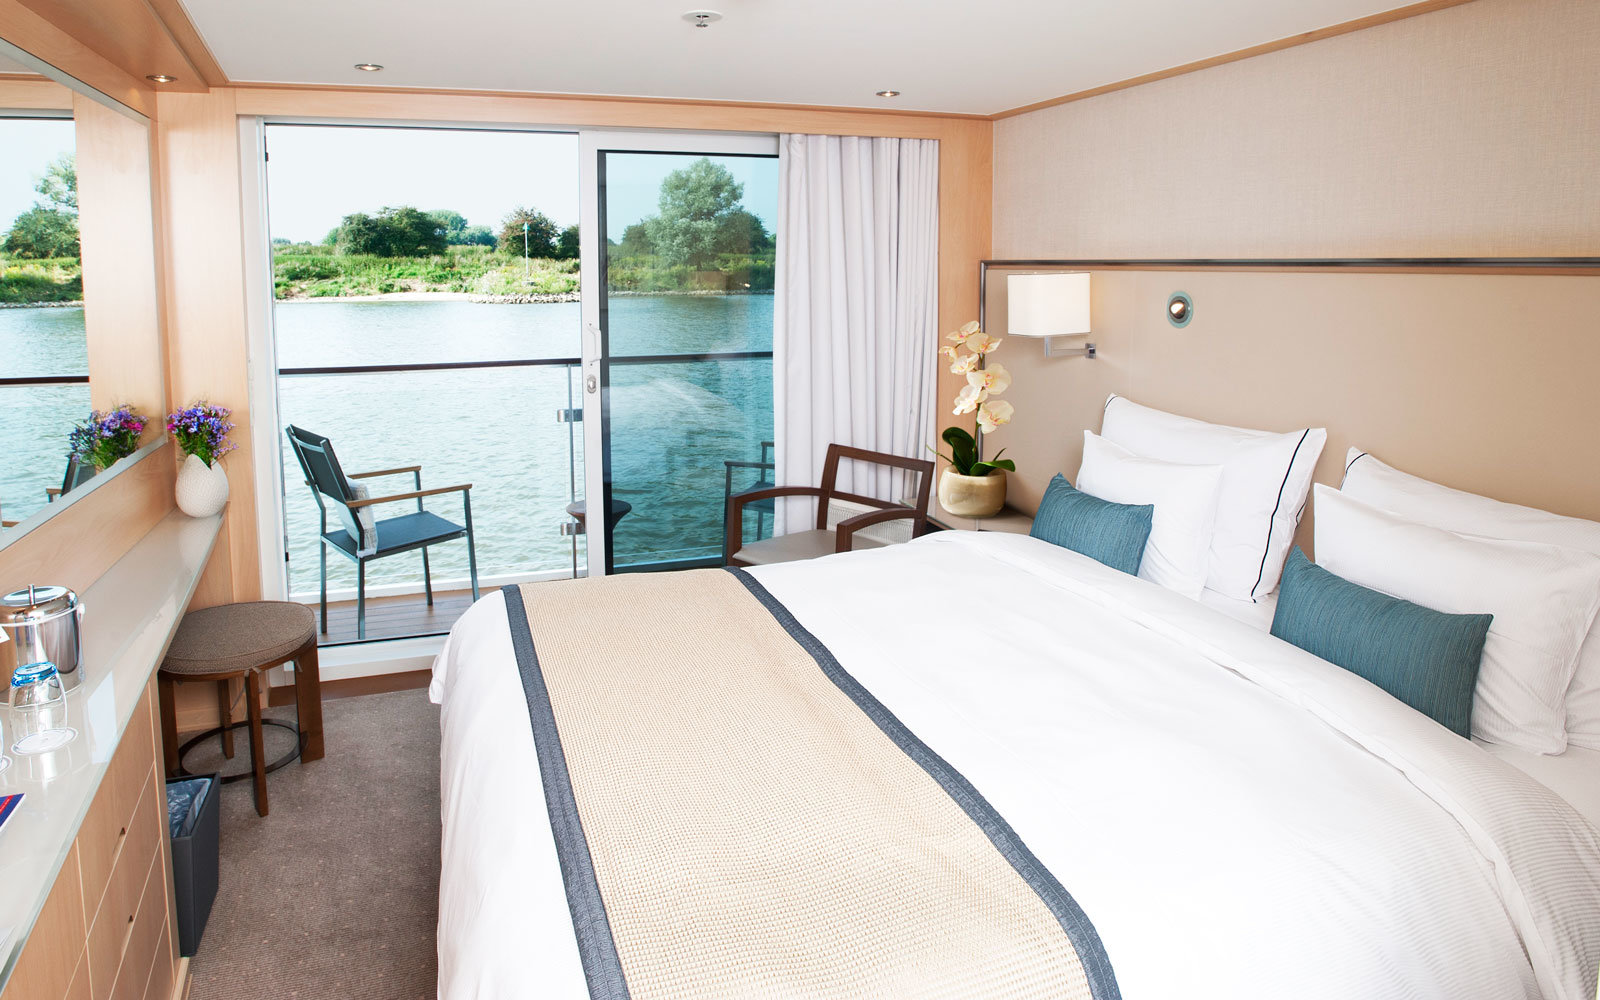 Viking River Cruise state room